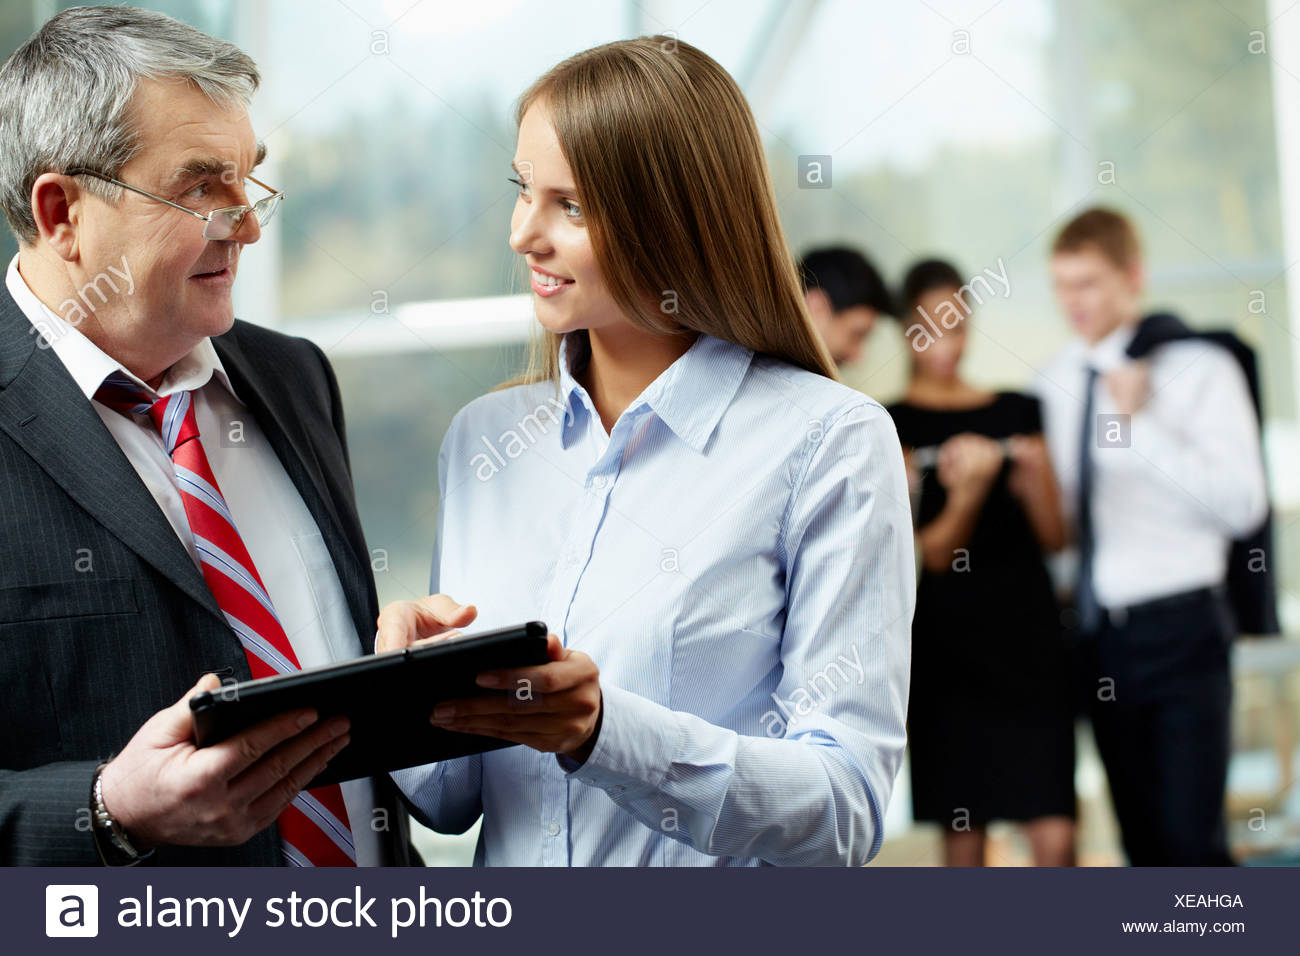 Young woman talking to a senior businessman - Stock Image